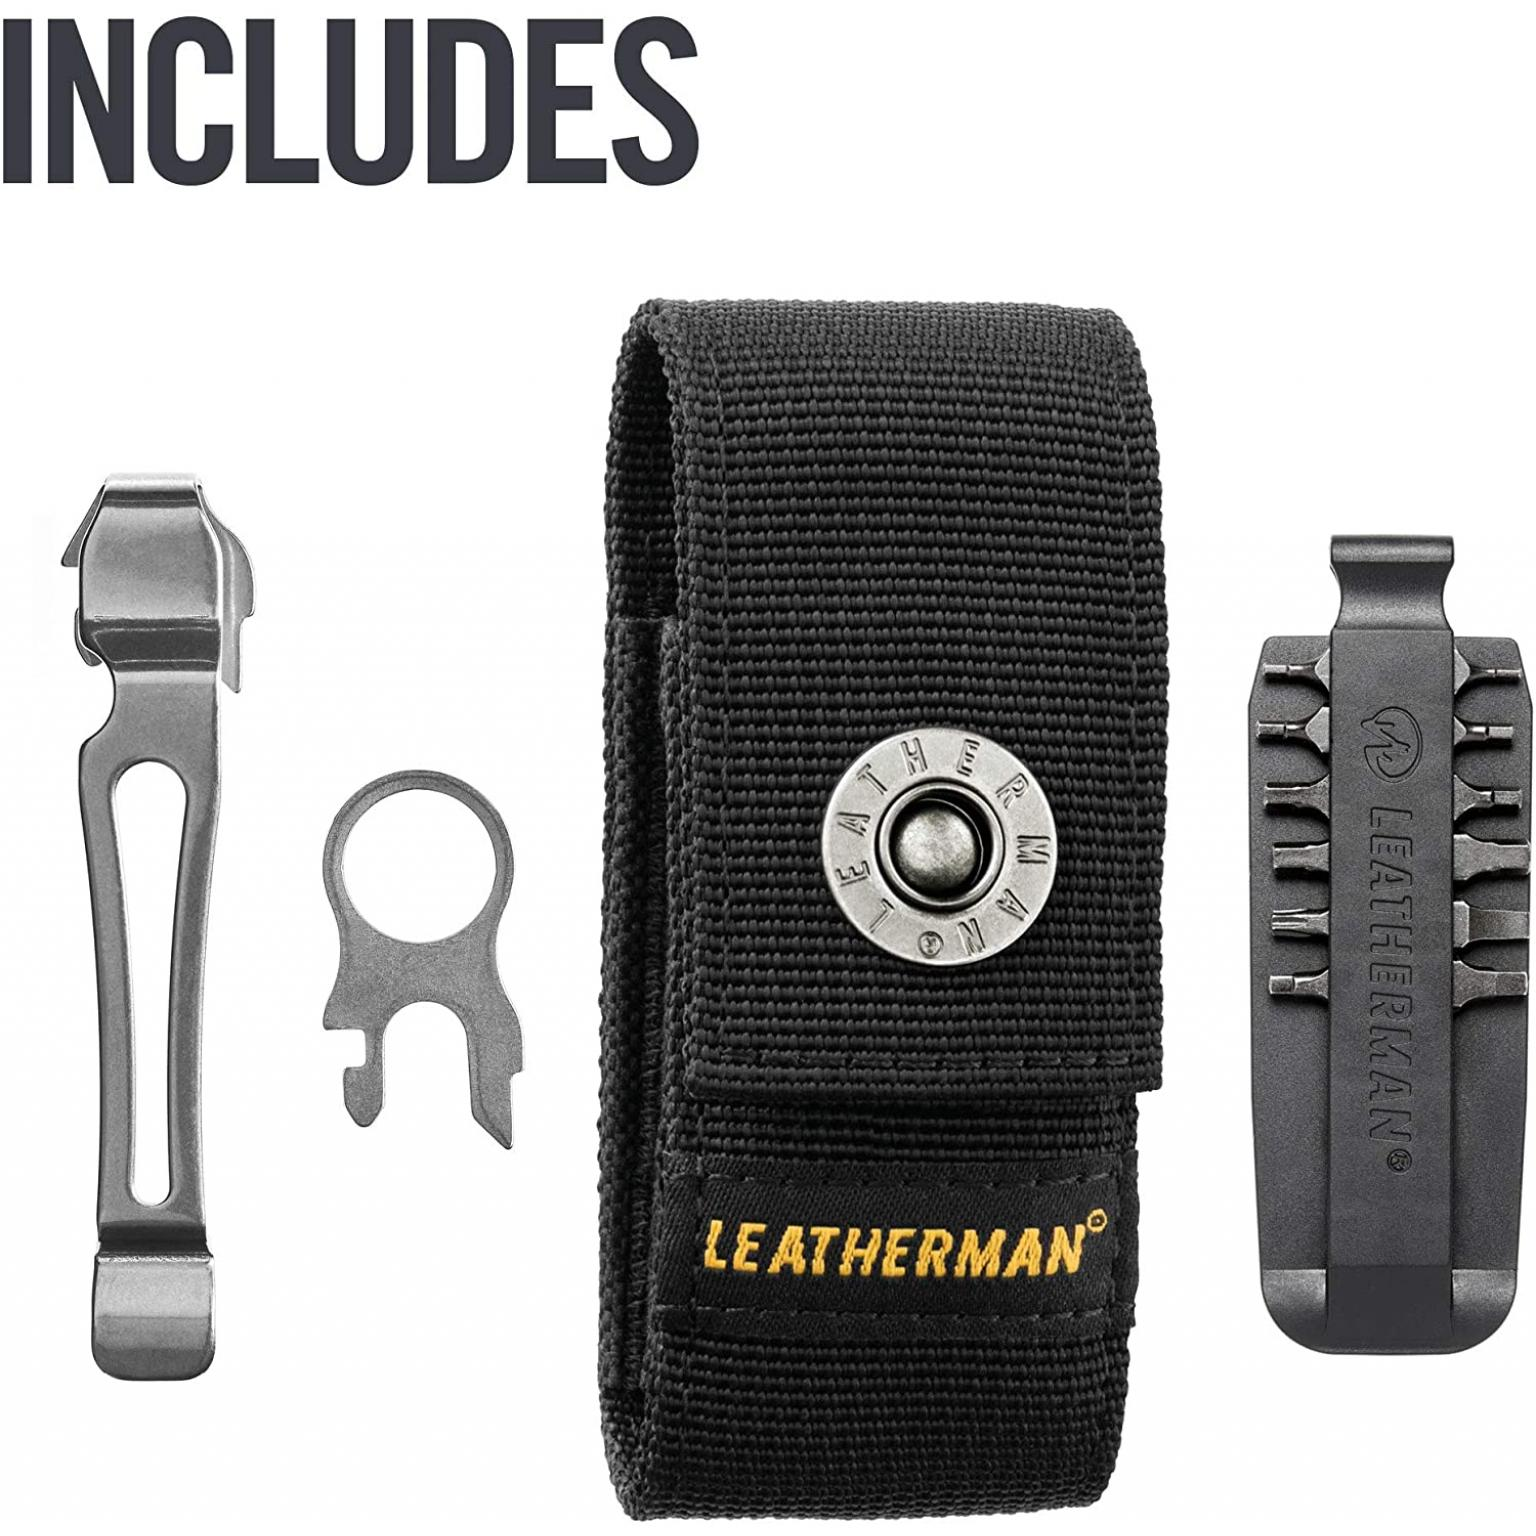 LEATHERMAN, Charge Plus Multitool with Scissors and Premium Replaceable Wire Cutters, Stainless Steel with Nylon Sheath